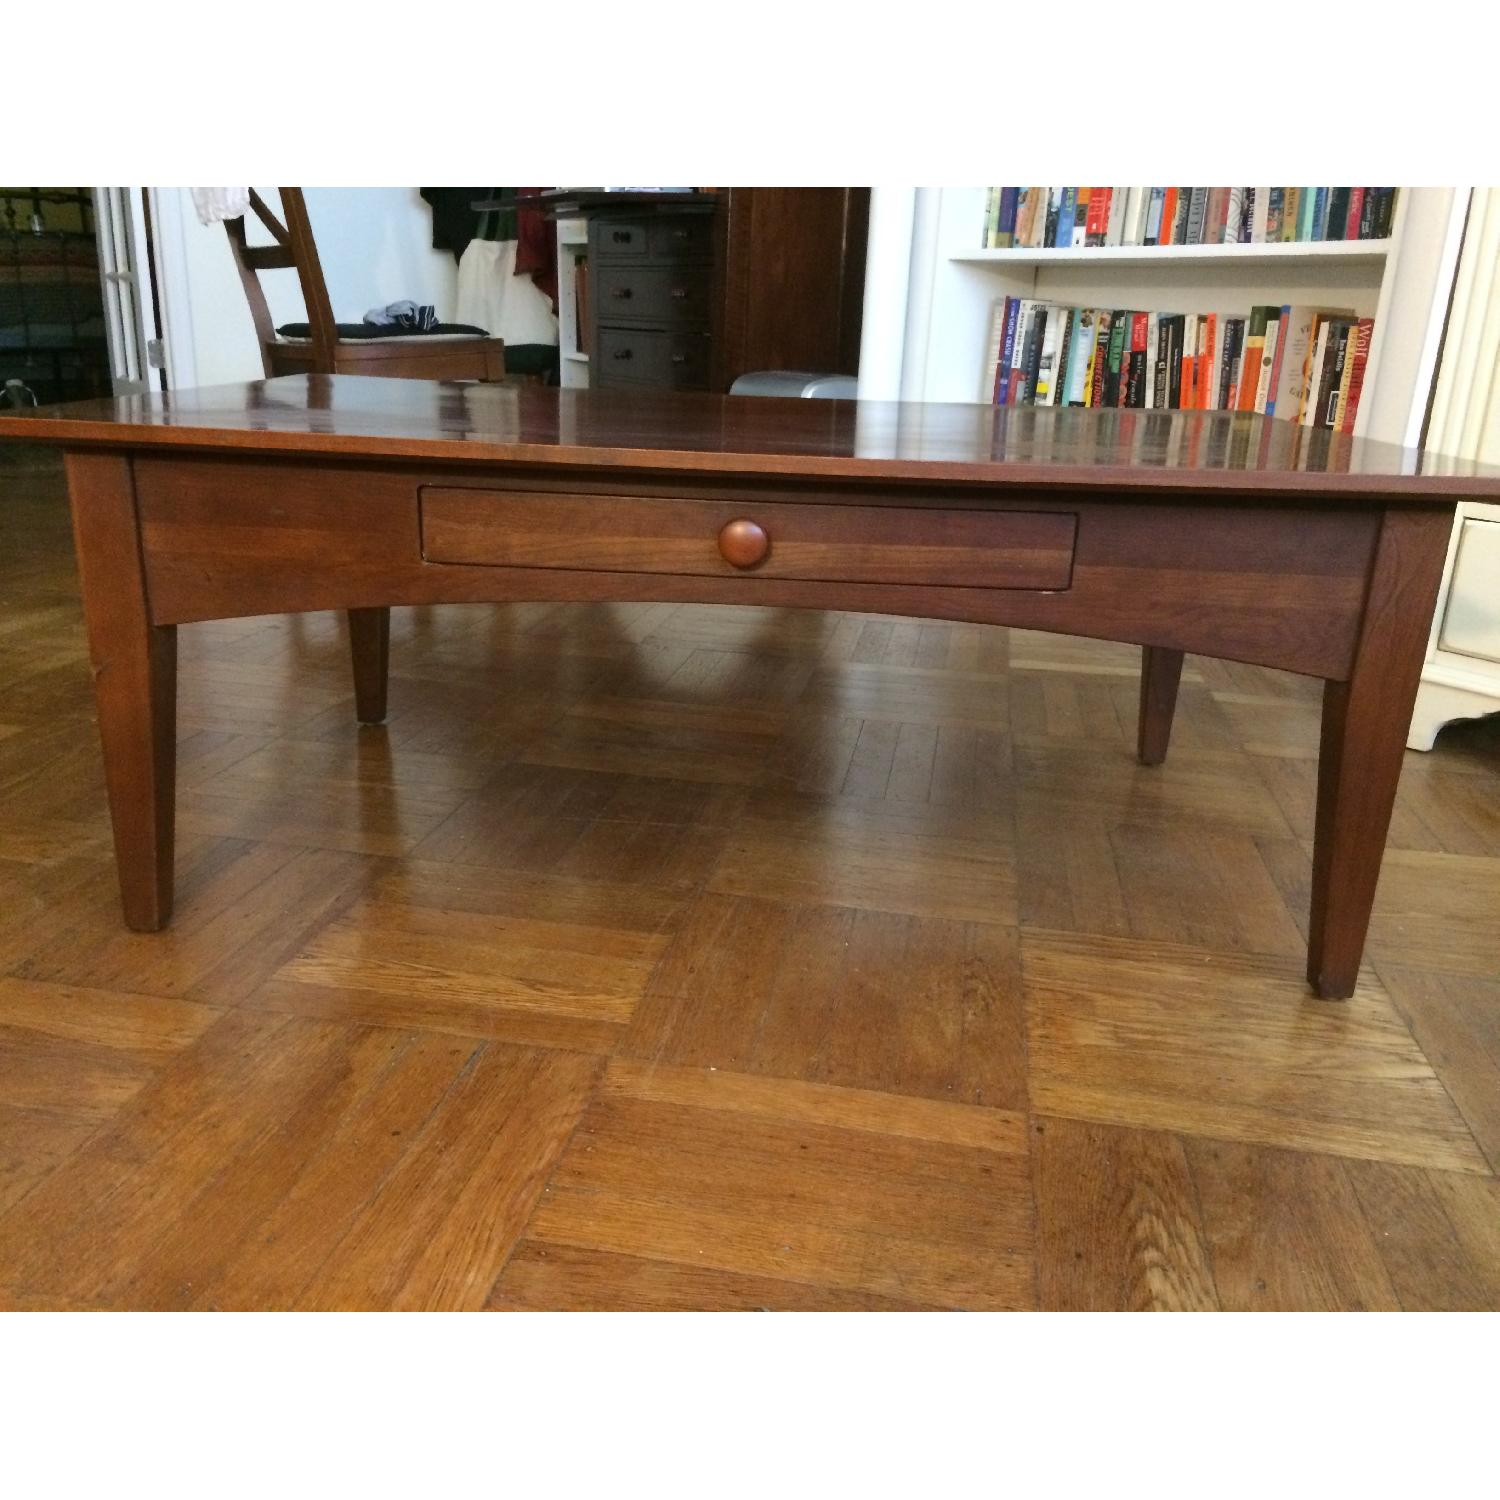 Ethan Allen Coffee Table w/ 1 Drawer-2